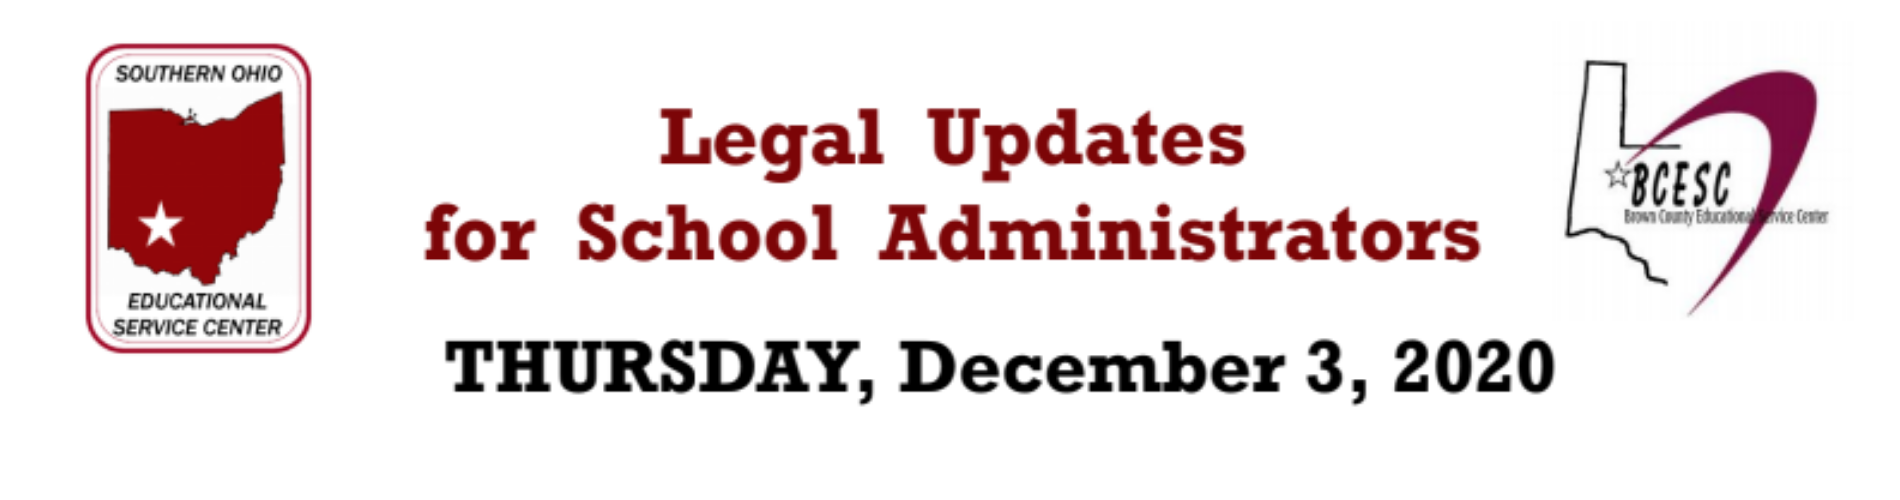 Legal Updates for School Administrators